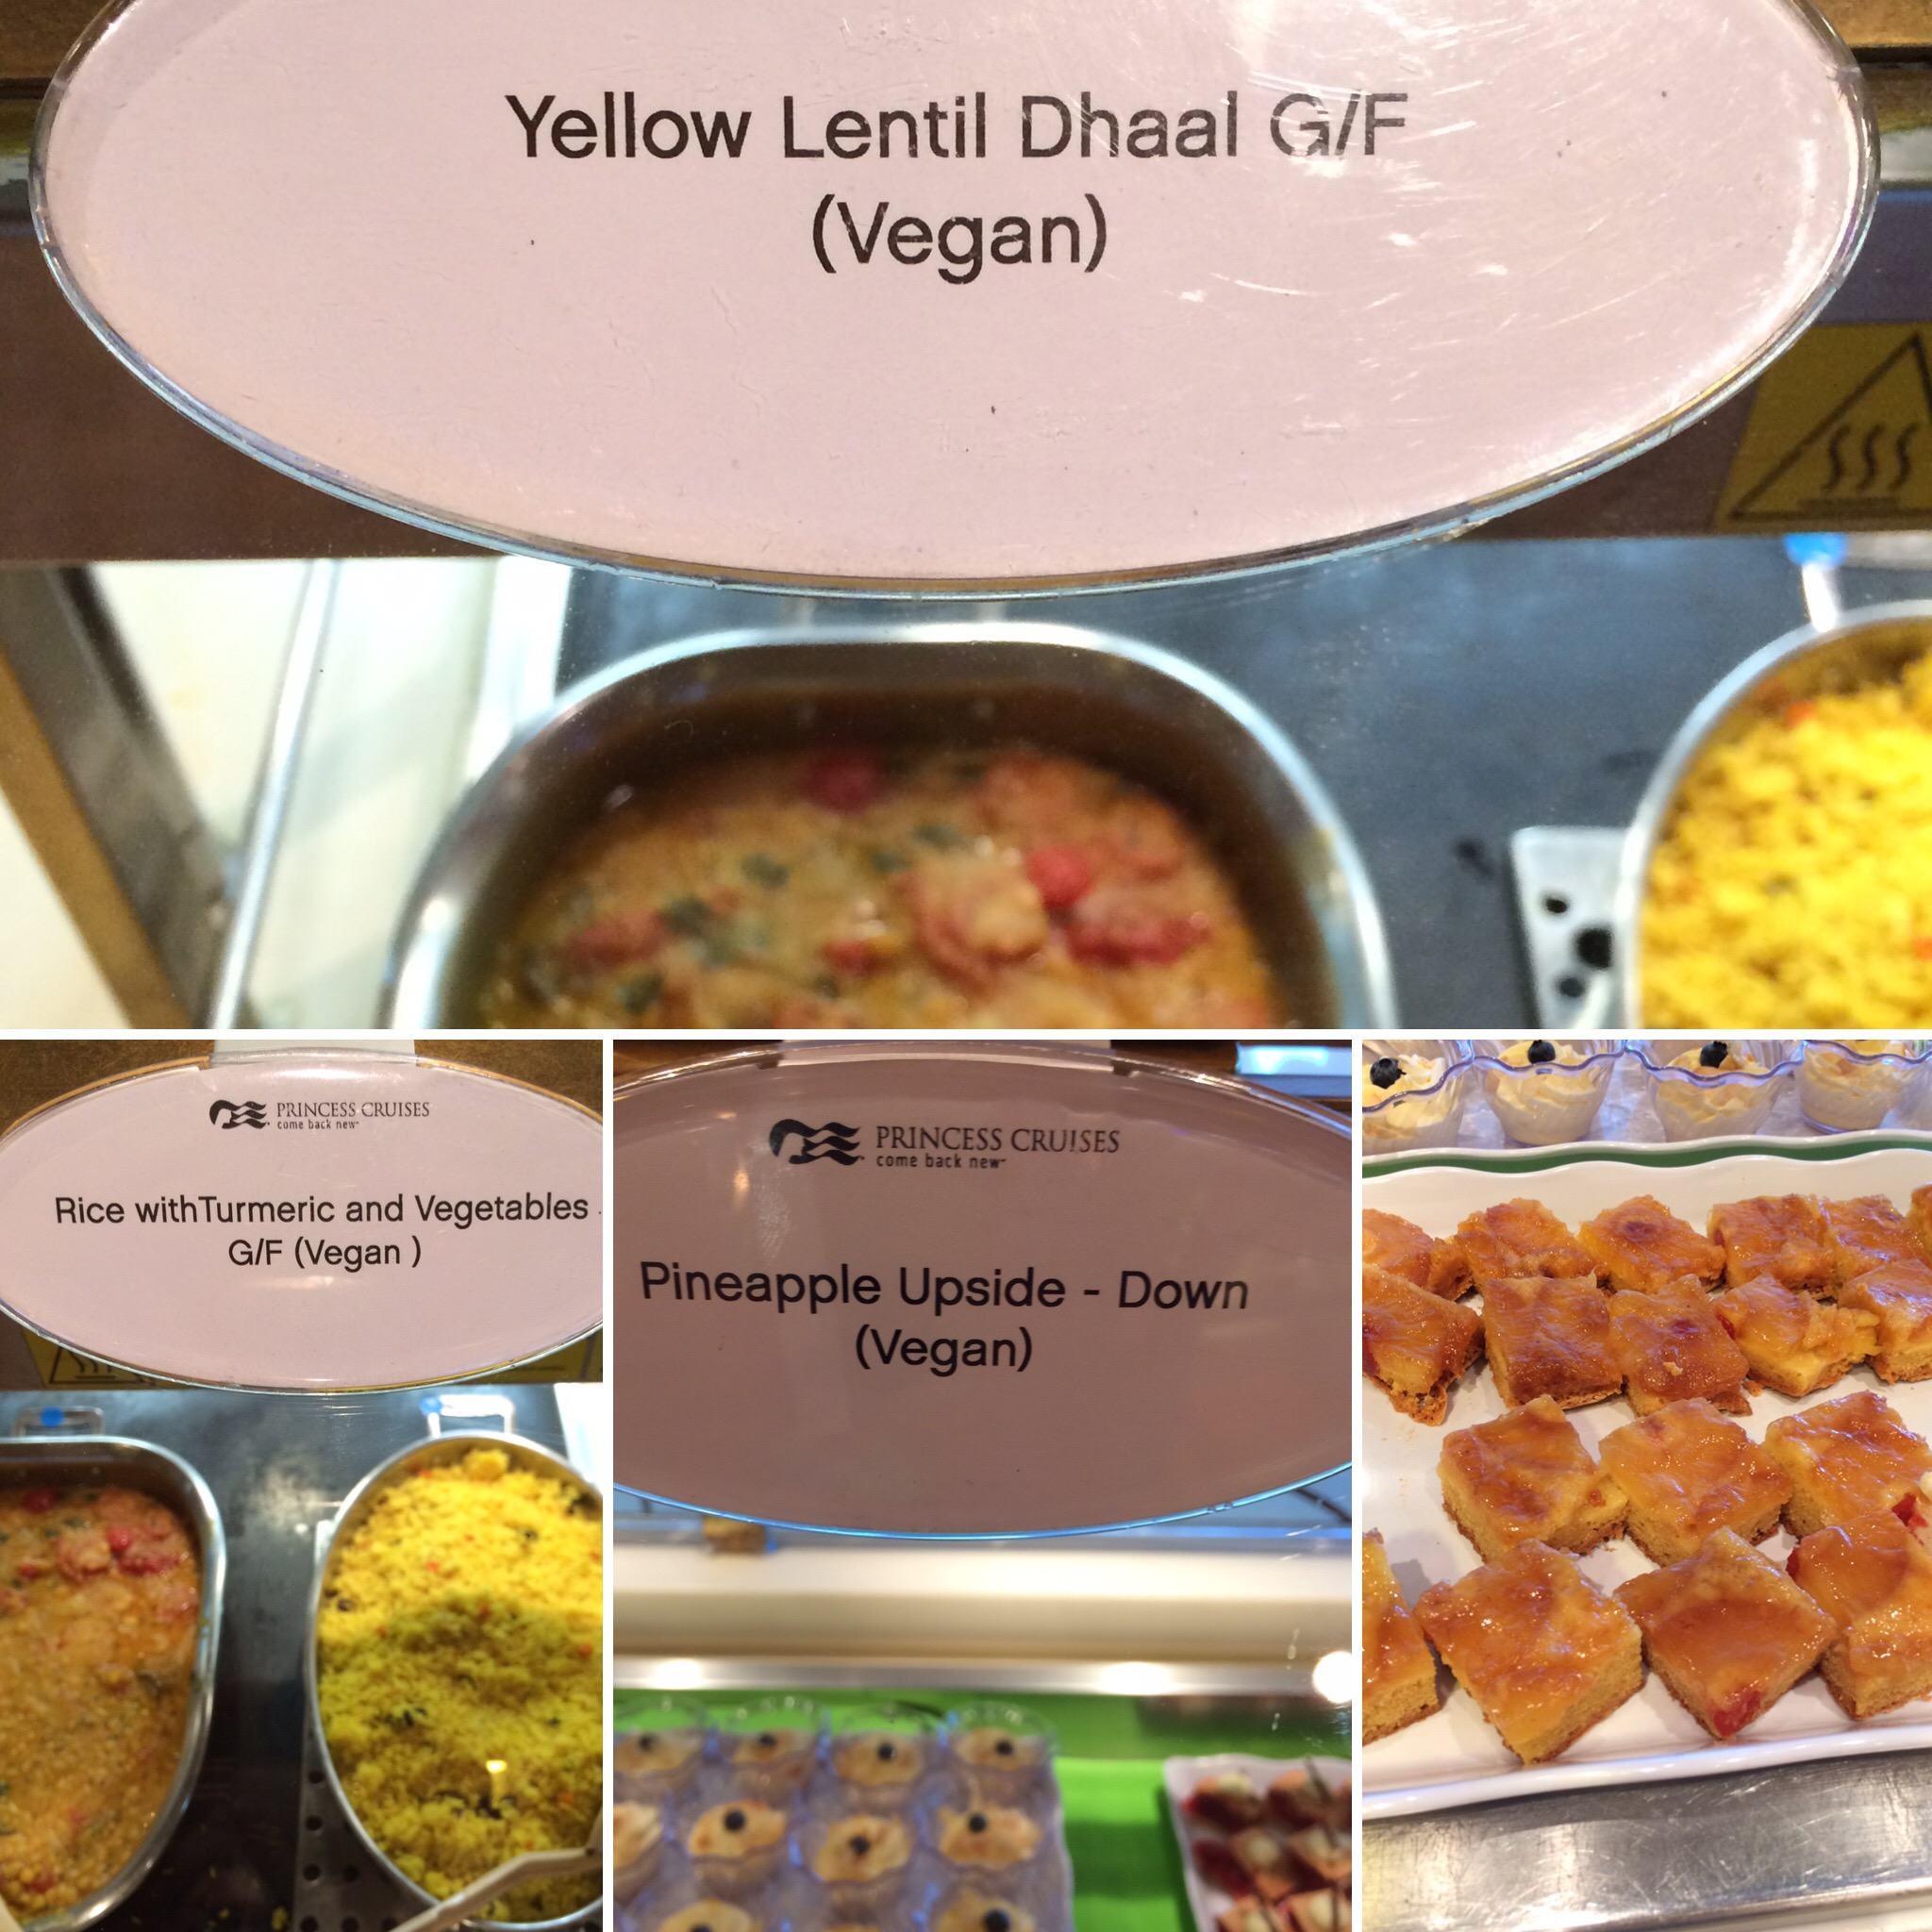 Crown Princess vegan buffet lunch options collage with pineapple cake